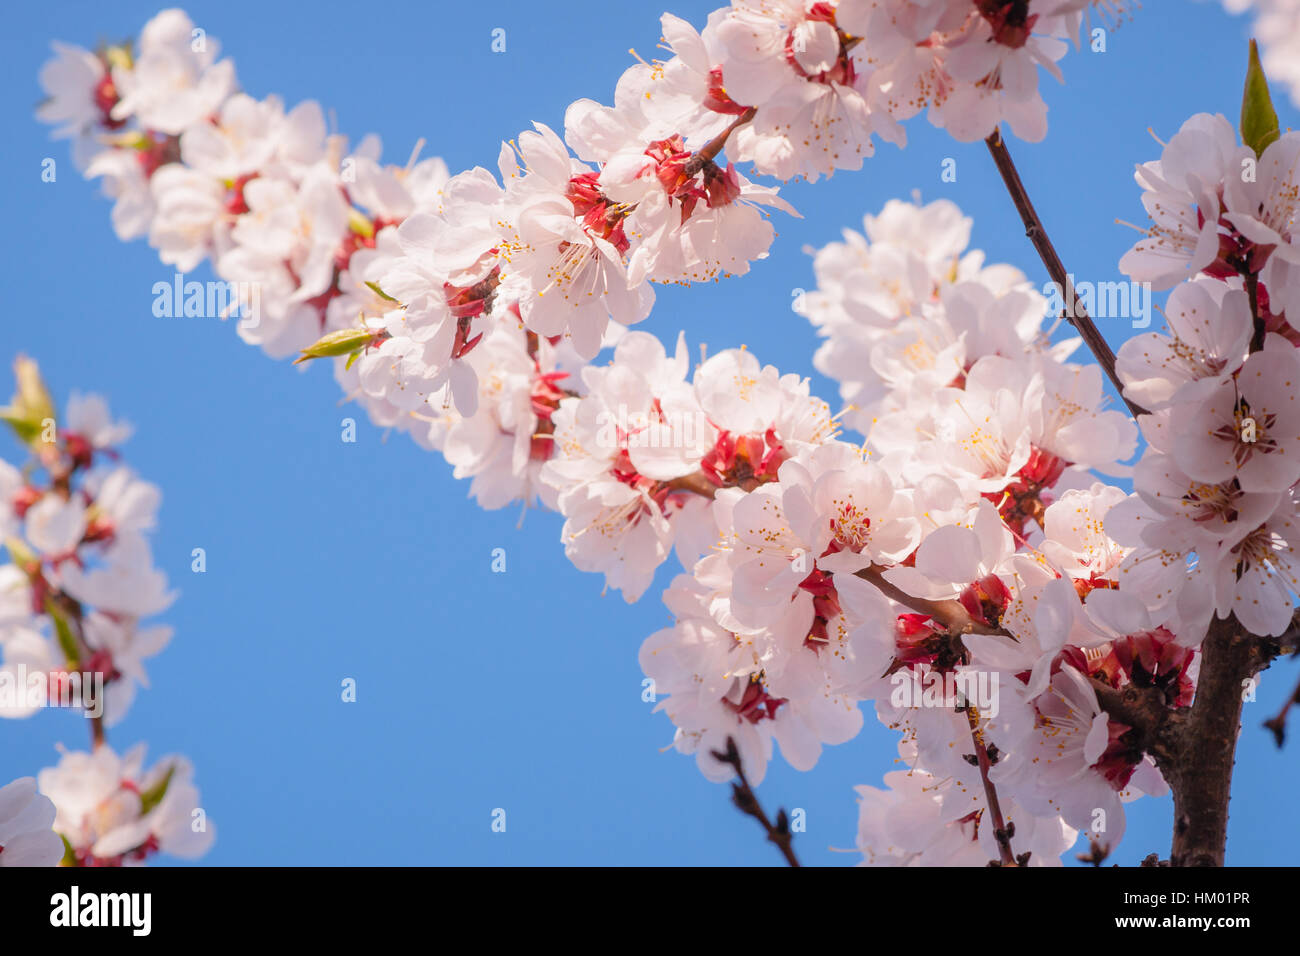 Soft flowers of japanese apricot prunus mume in full bloom pink soft flowers of japanese apricot prunus mume in full bloom pink flowers against the background of clear blue sky the joy and beauty of spring season mightylinksfo